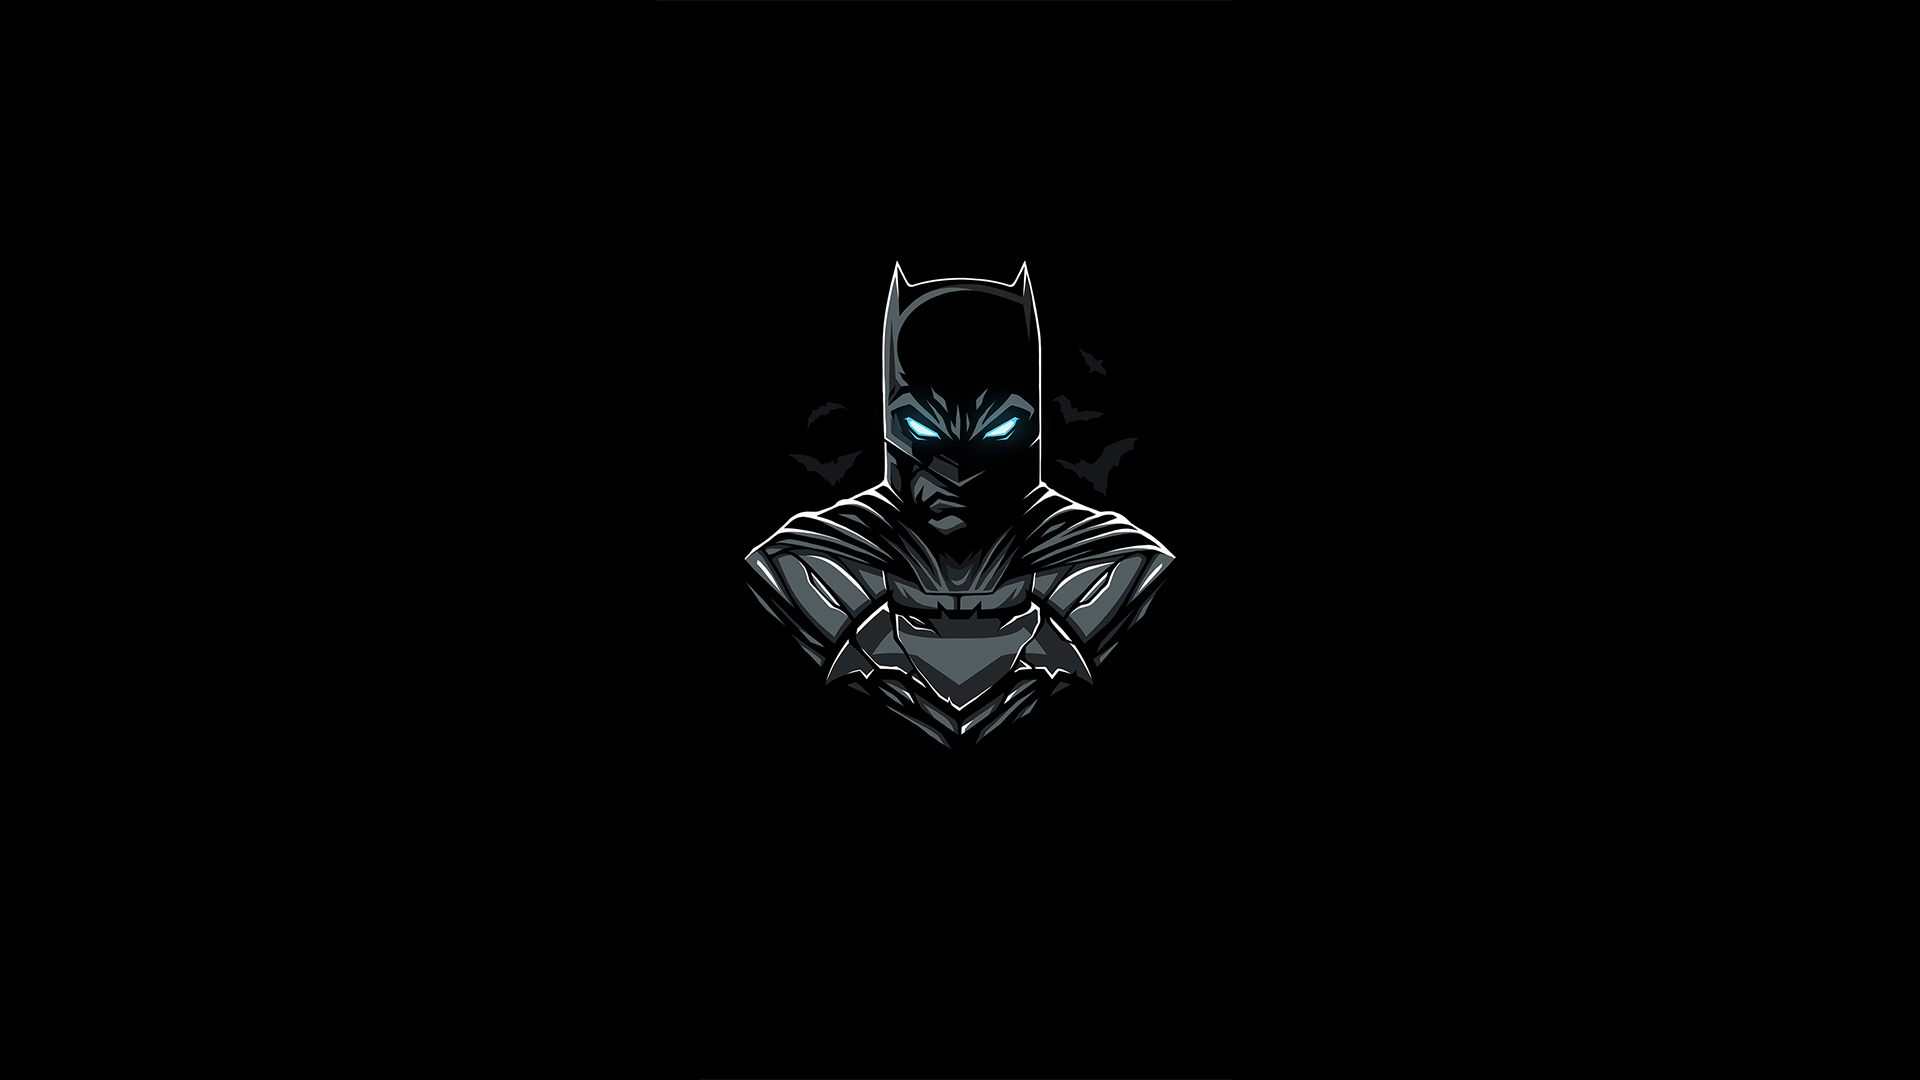 Batman Amoled Hd Superheroes 4k Wallpapers Images Backgrounds